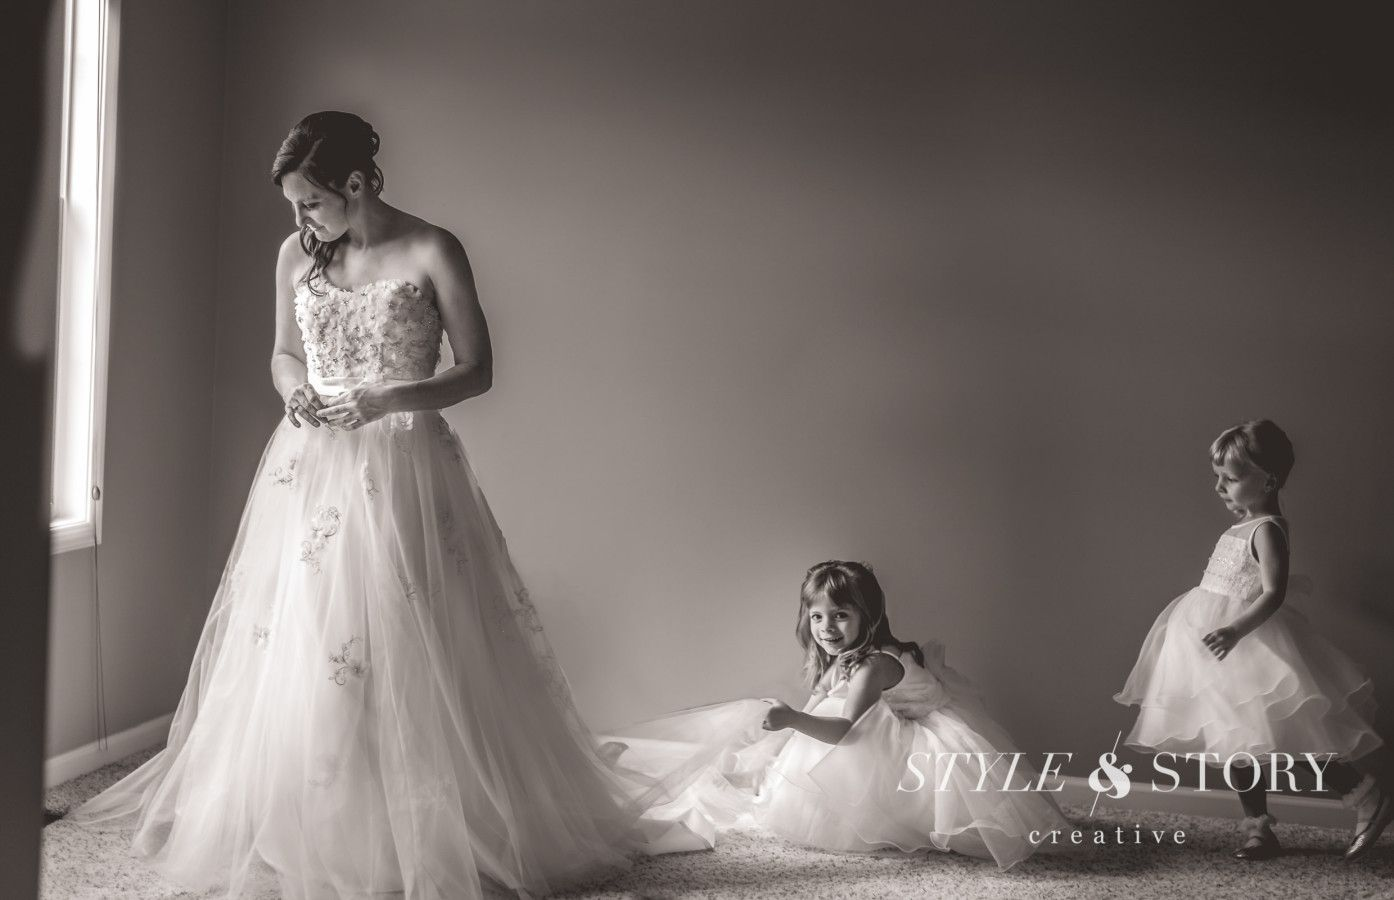 Style & Story Creative » Columbus wedding photographers who take a more personal approach to creating artistic wedding photography. » Wedding Gallery